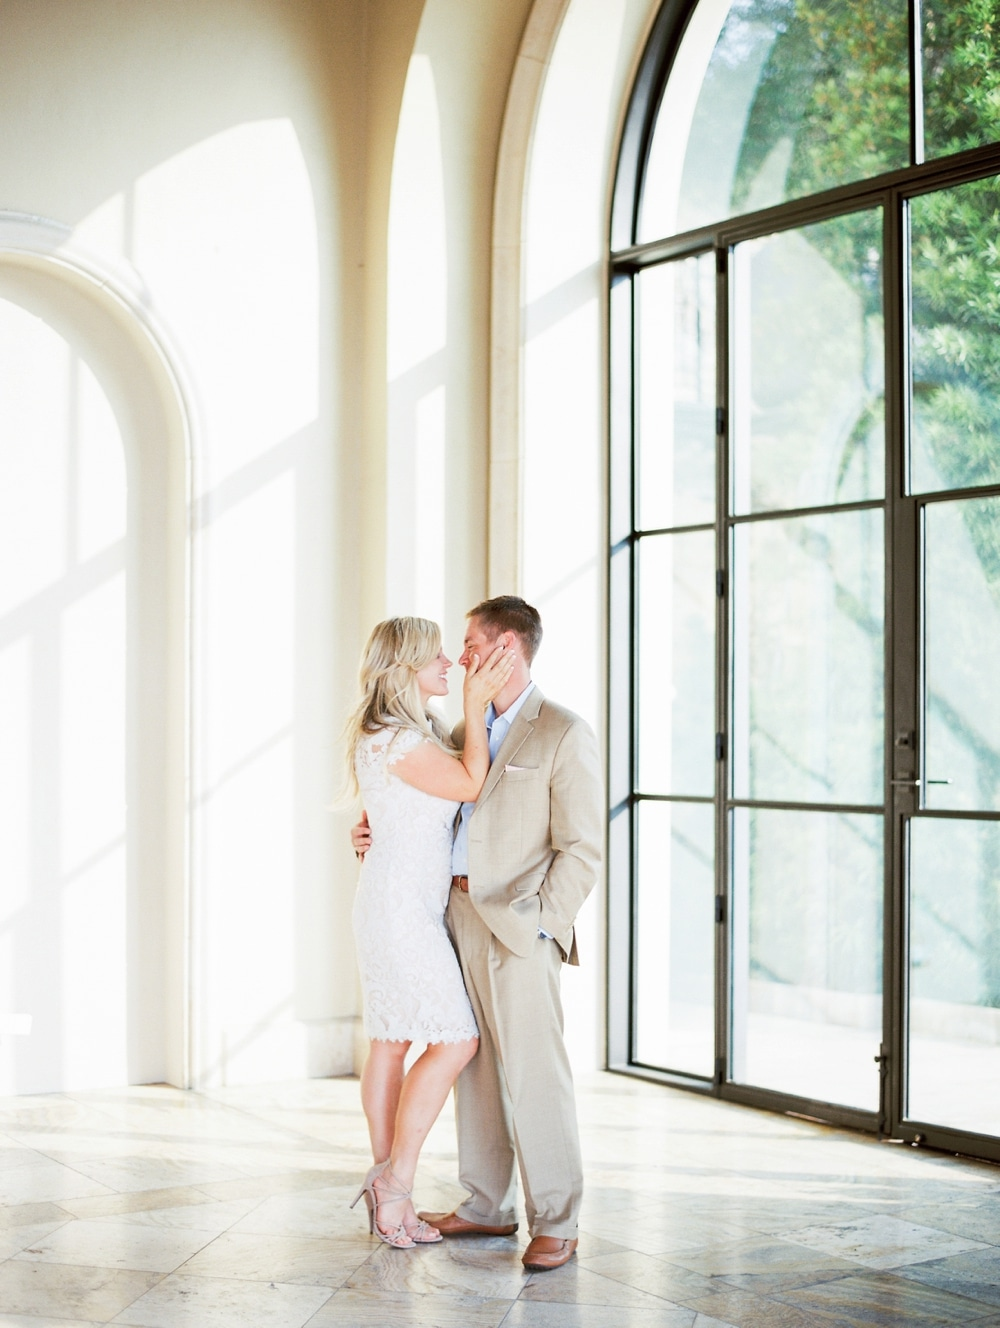 kristin-la-voie-photography-Austin-Wedding-Photographer-Villa-Del-Lago-1